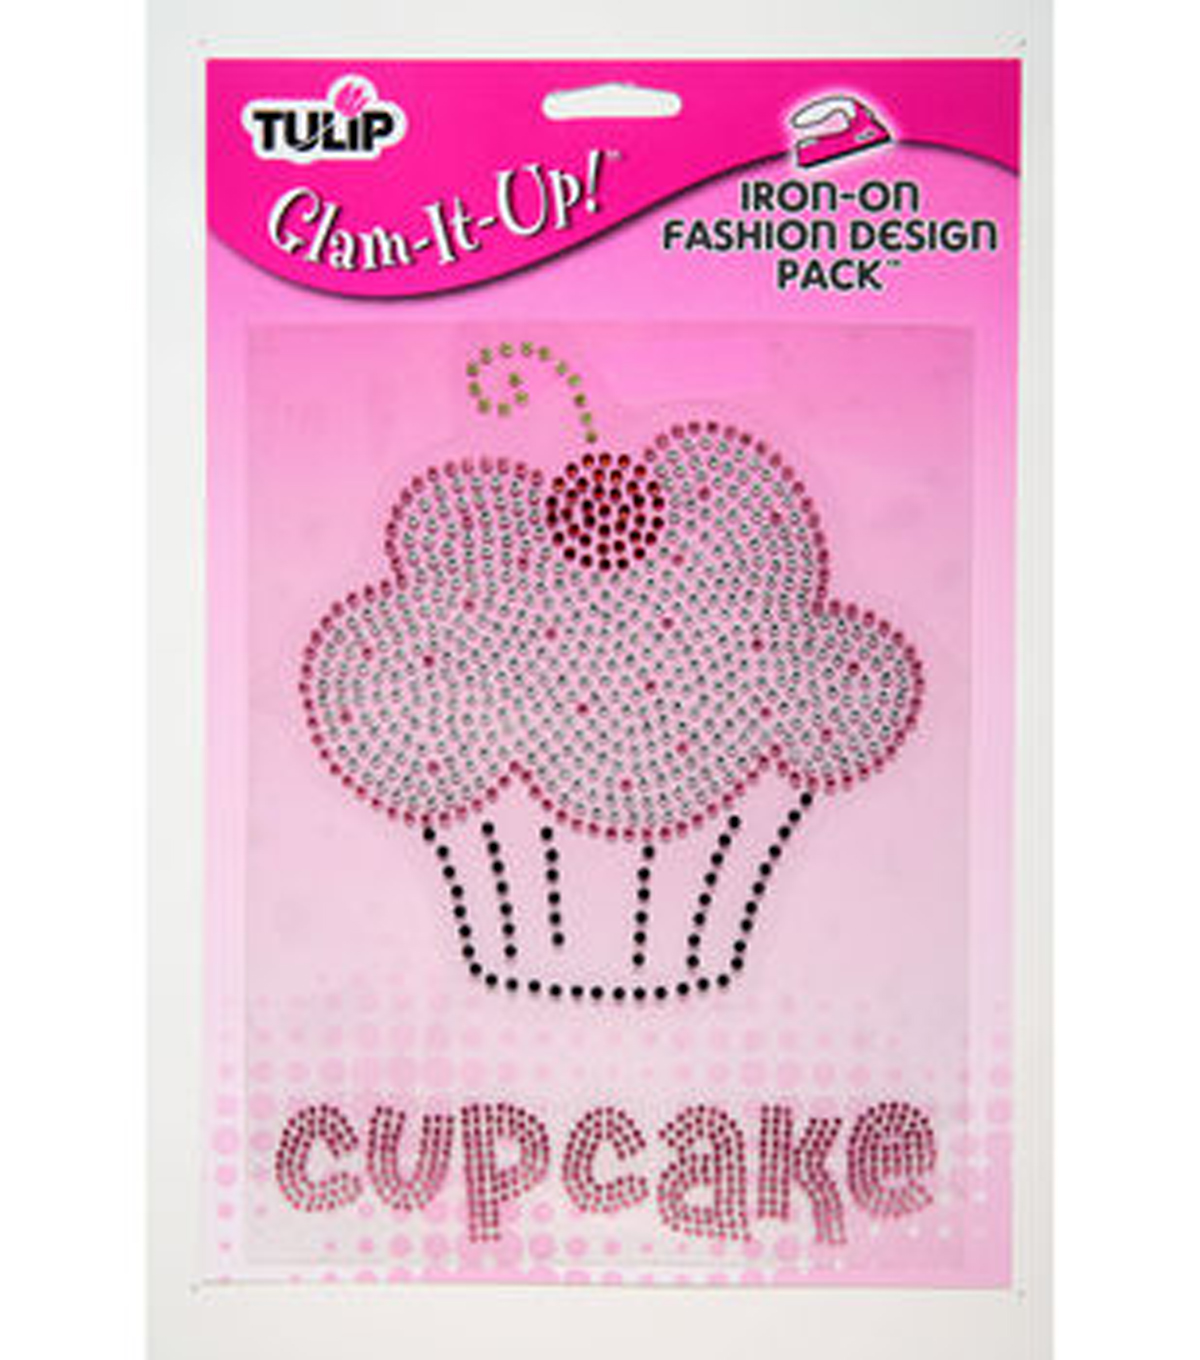 Tulip® Glam-It-Up!™ Iron On Large Pack-Cupcake